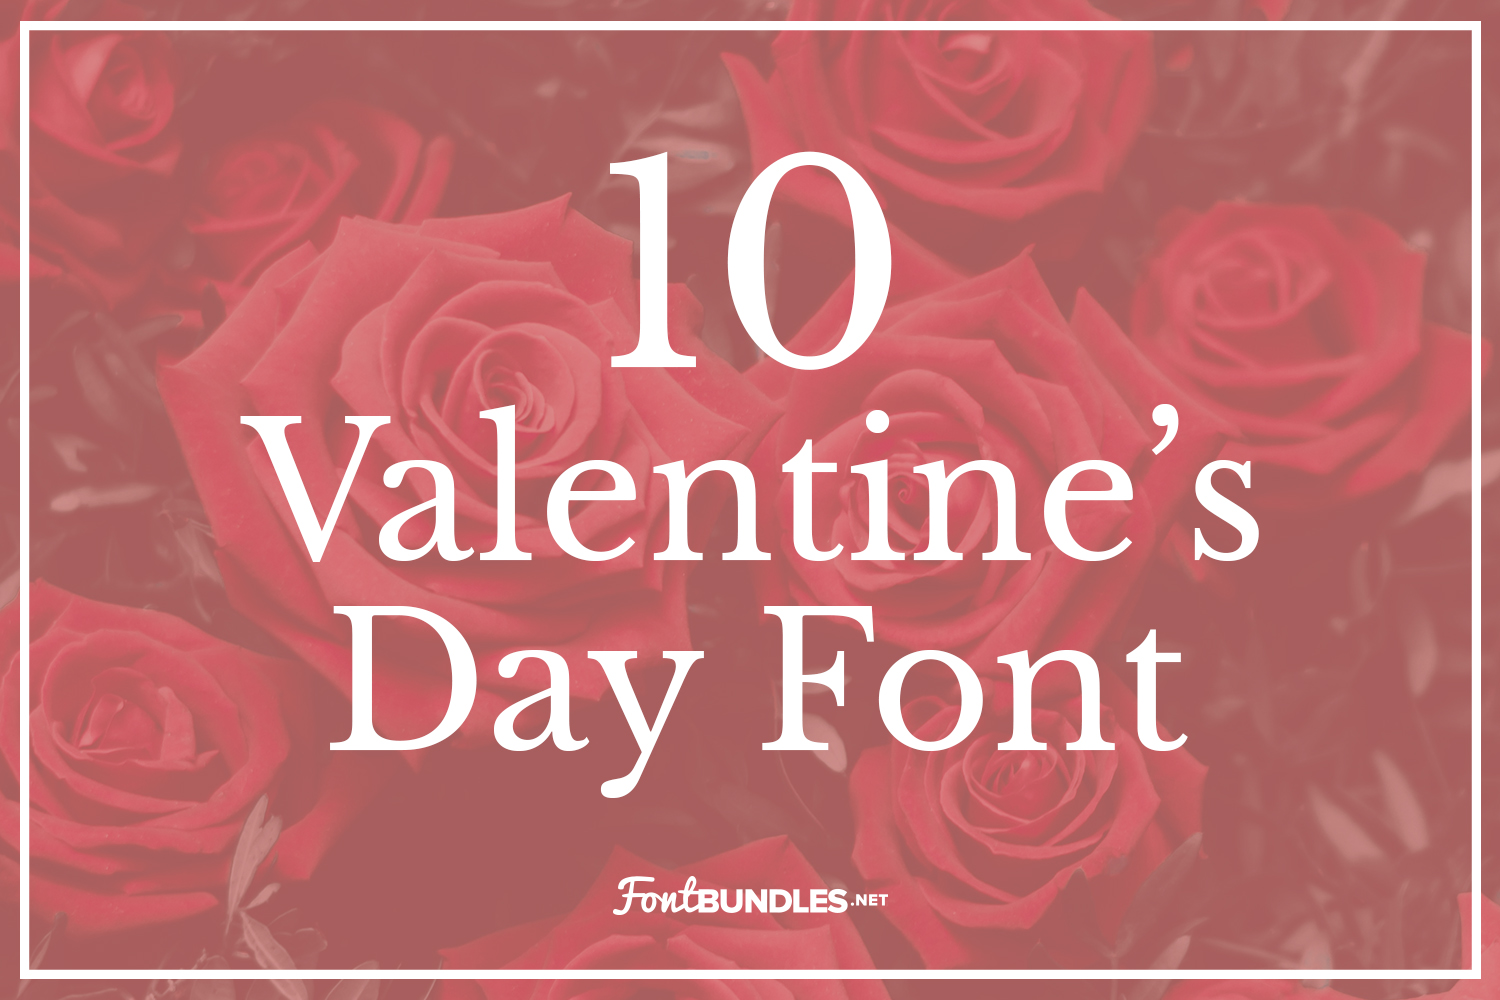 10 Valentine's Day Fonts